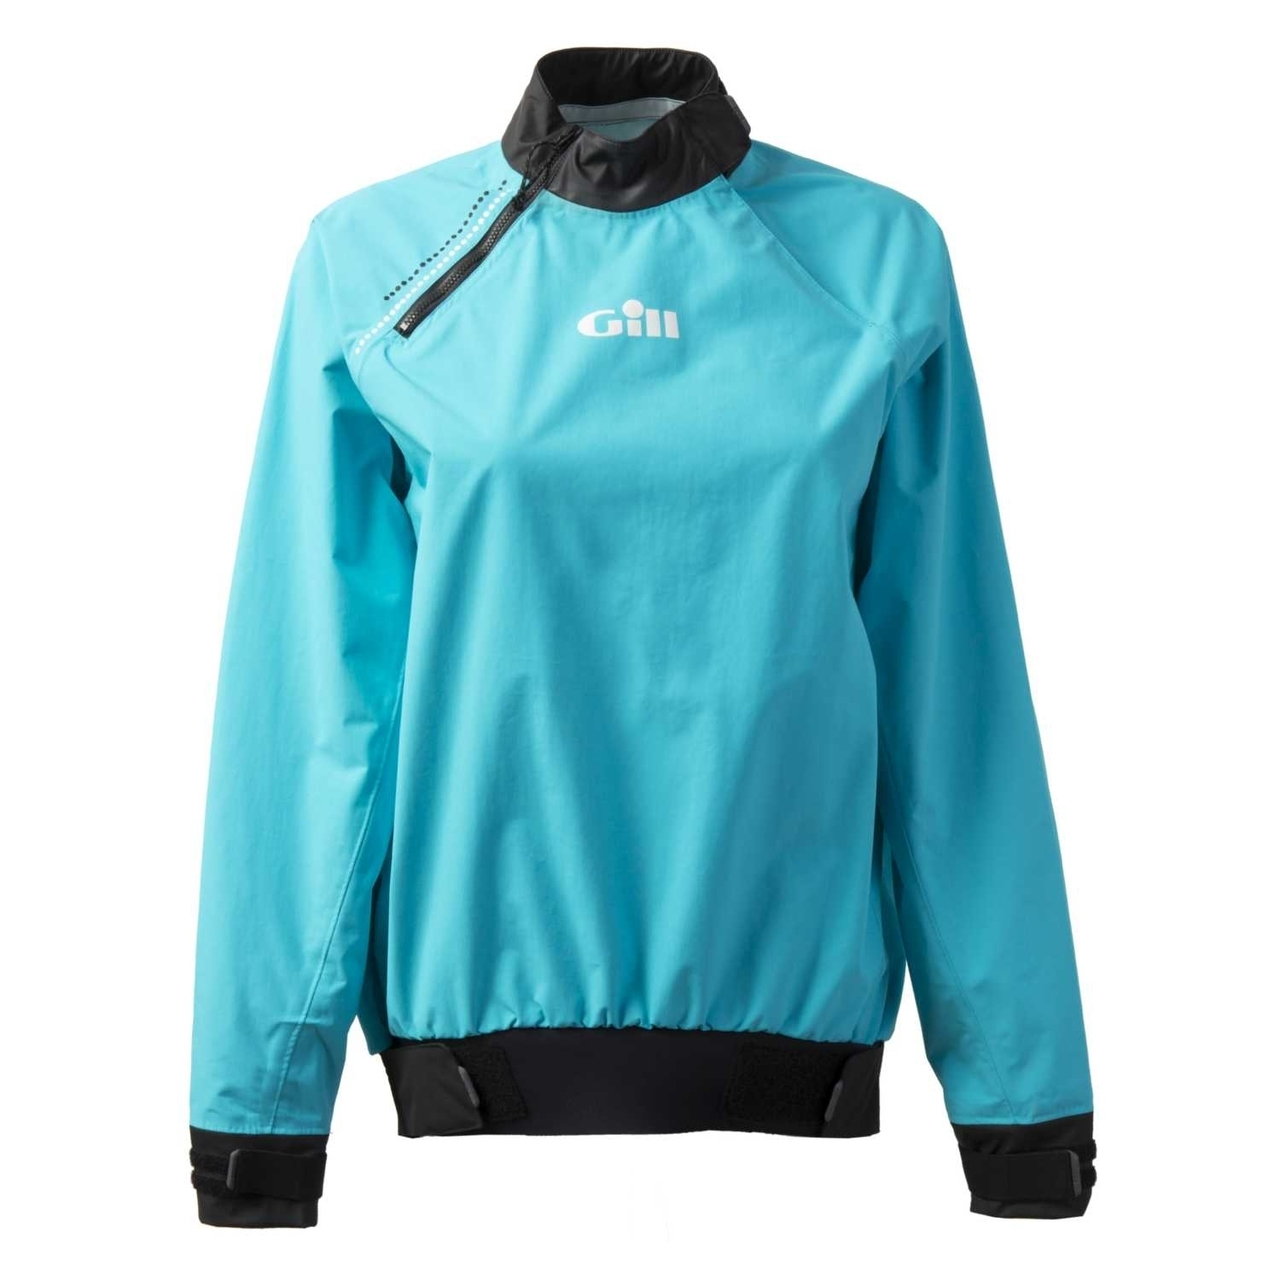 Women's Sailing Gear